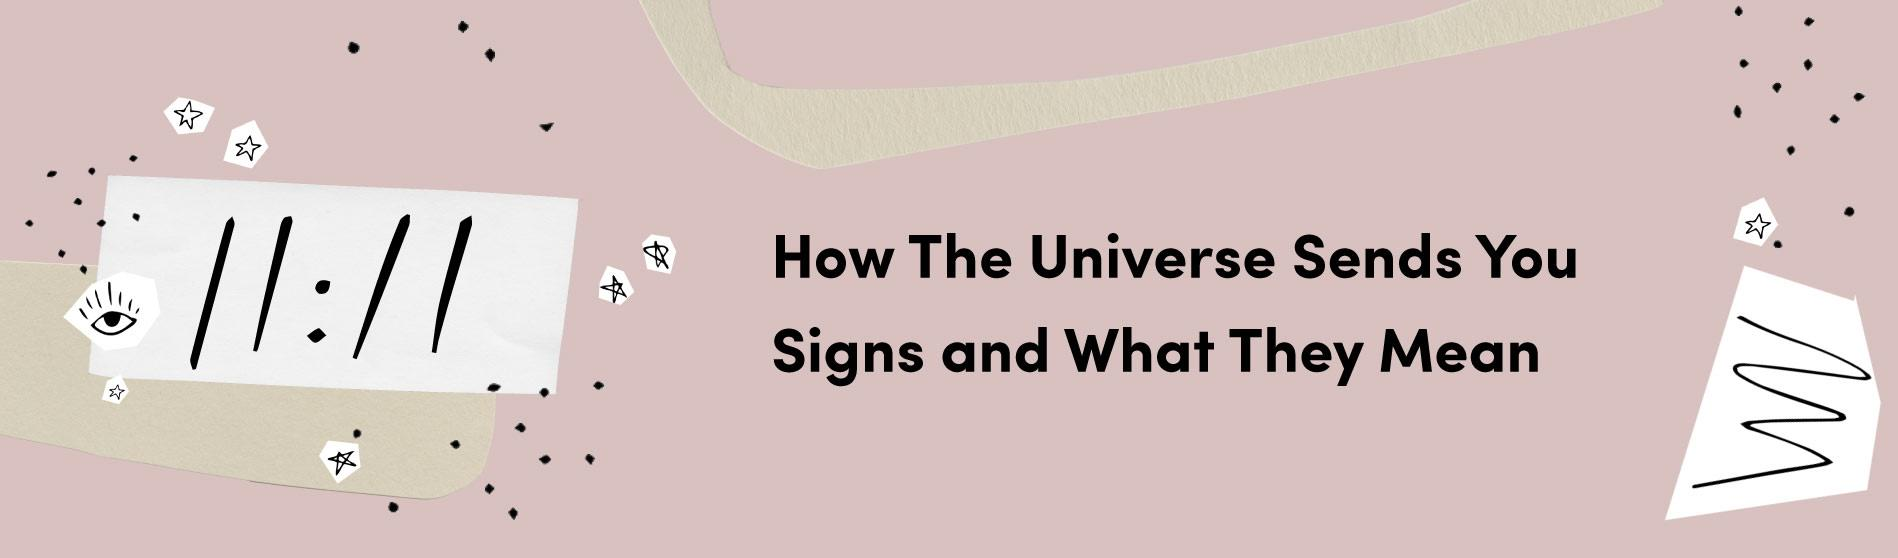 11:11PM: 5 Ways the Universe Sends You Signs and What They